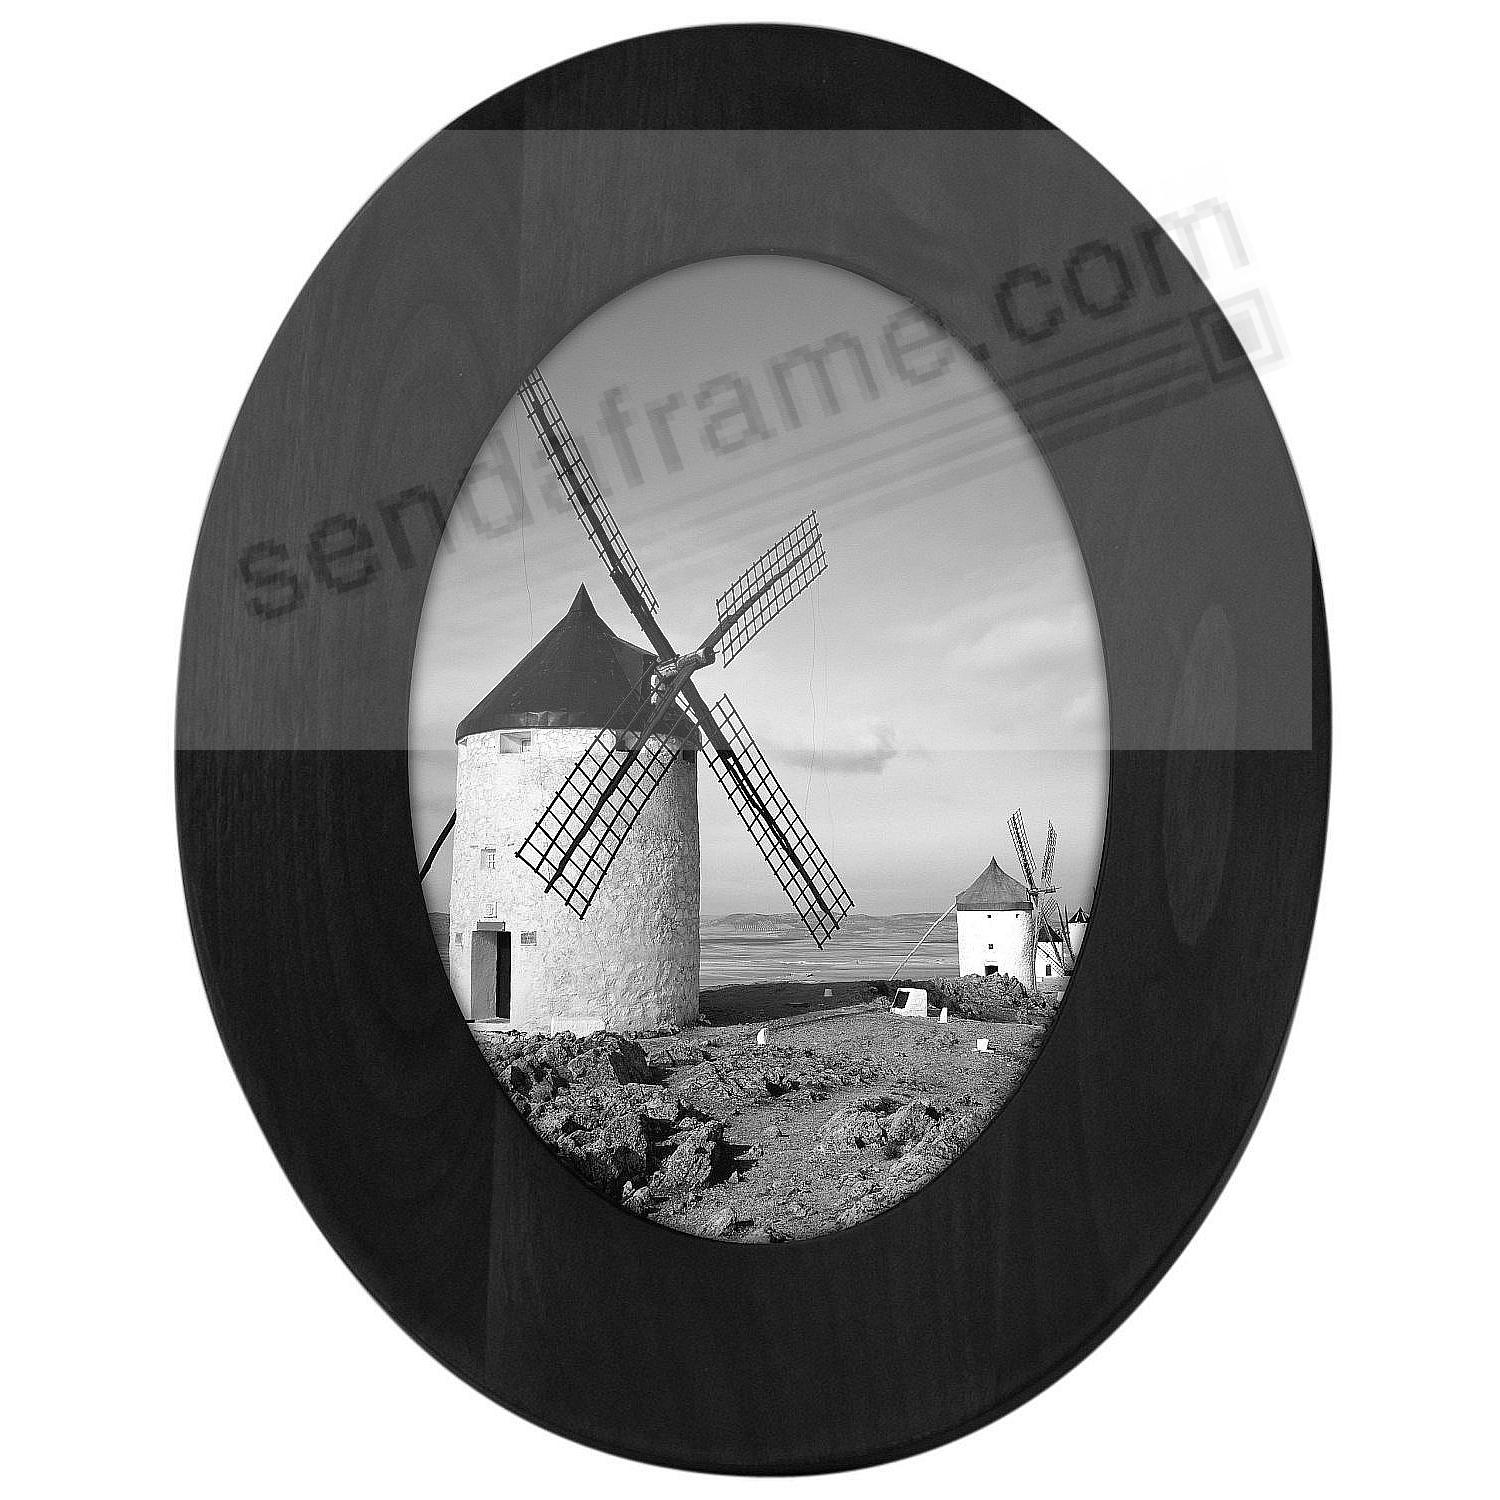 BLACK OVAL wood 8x10 frame by Malden®